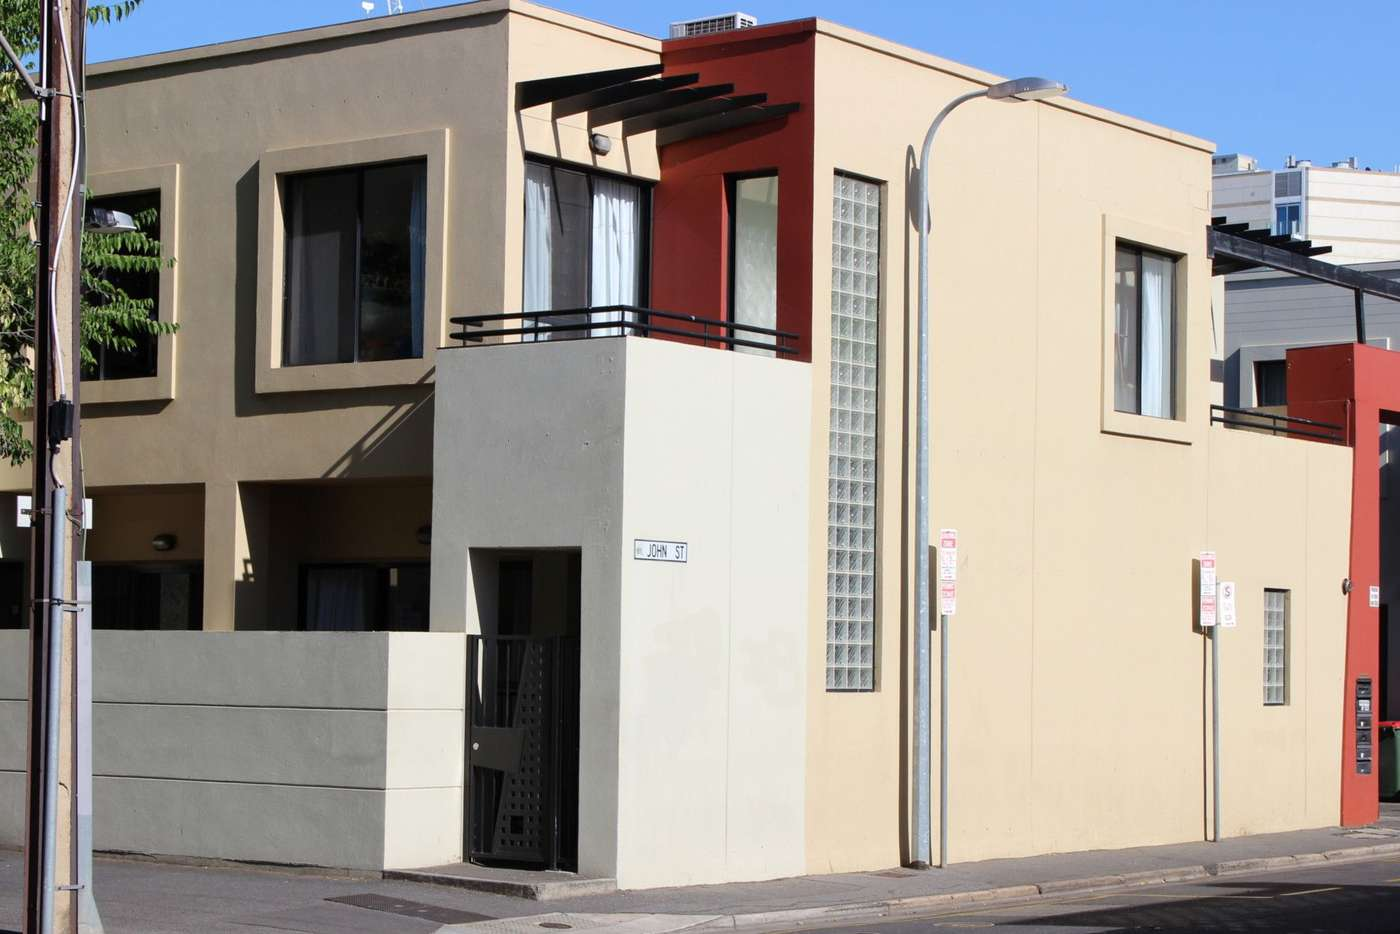 Main view of Homely townhouse listing, 14 Sturt Street, Adelaide SA 5000